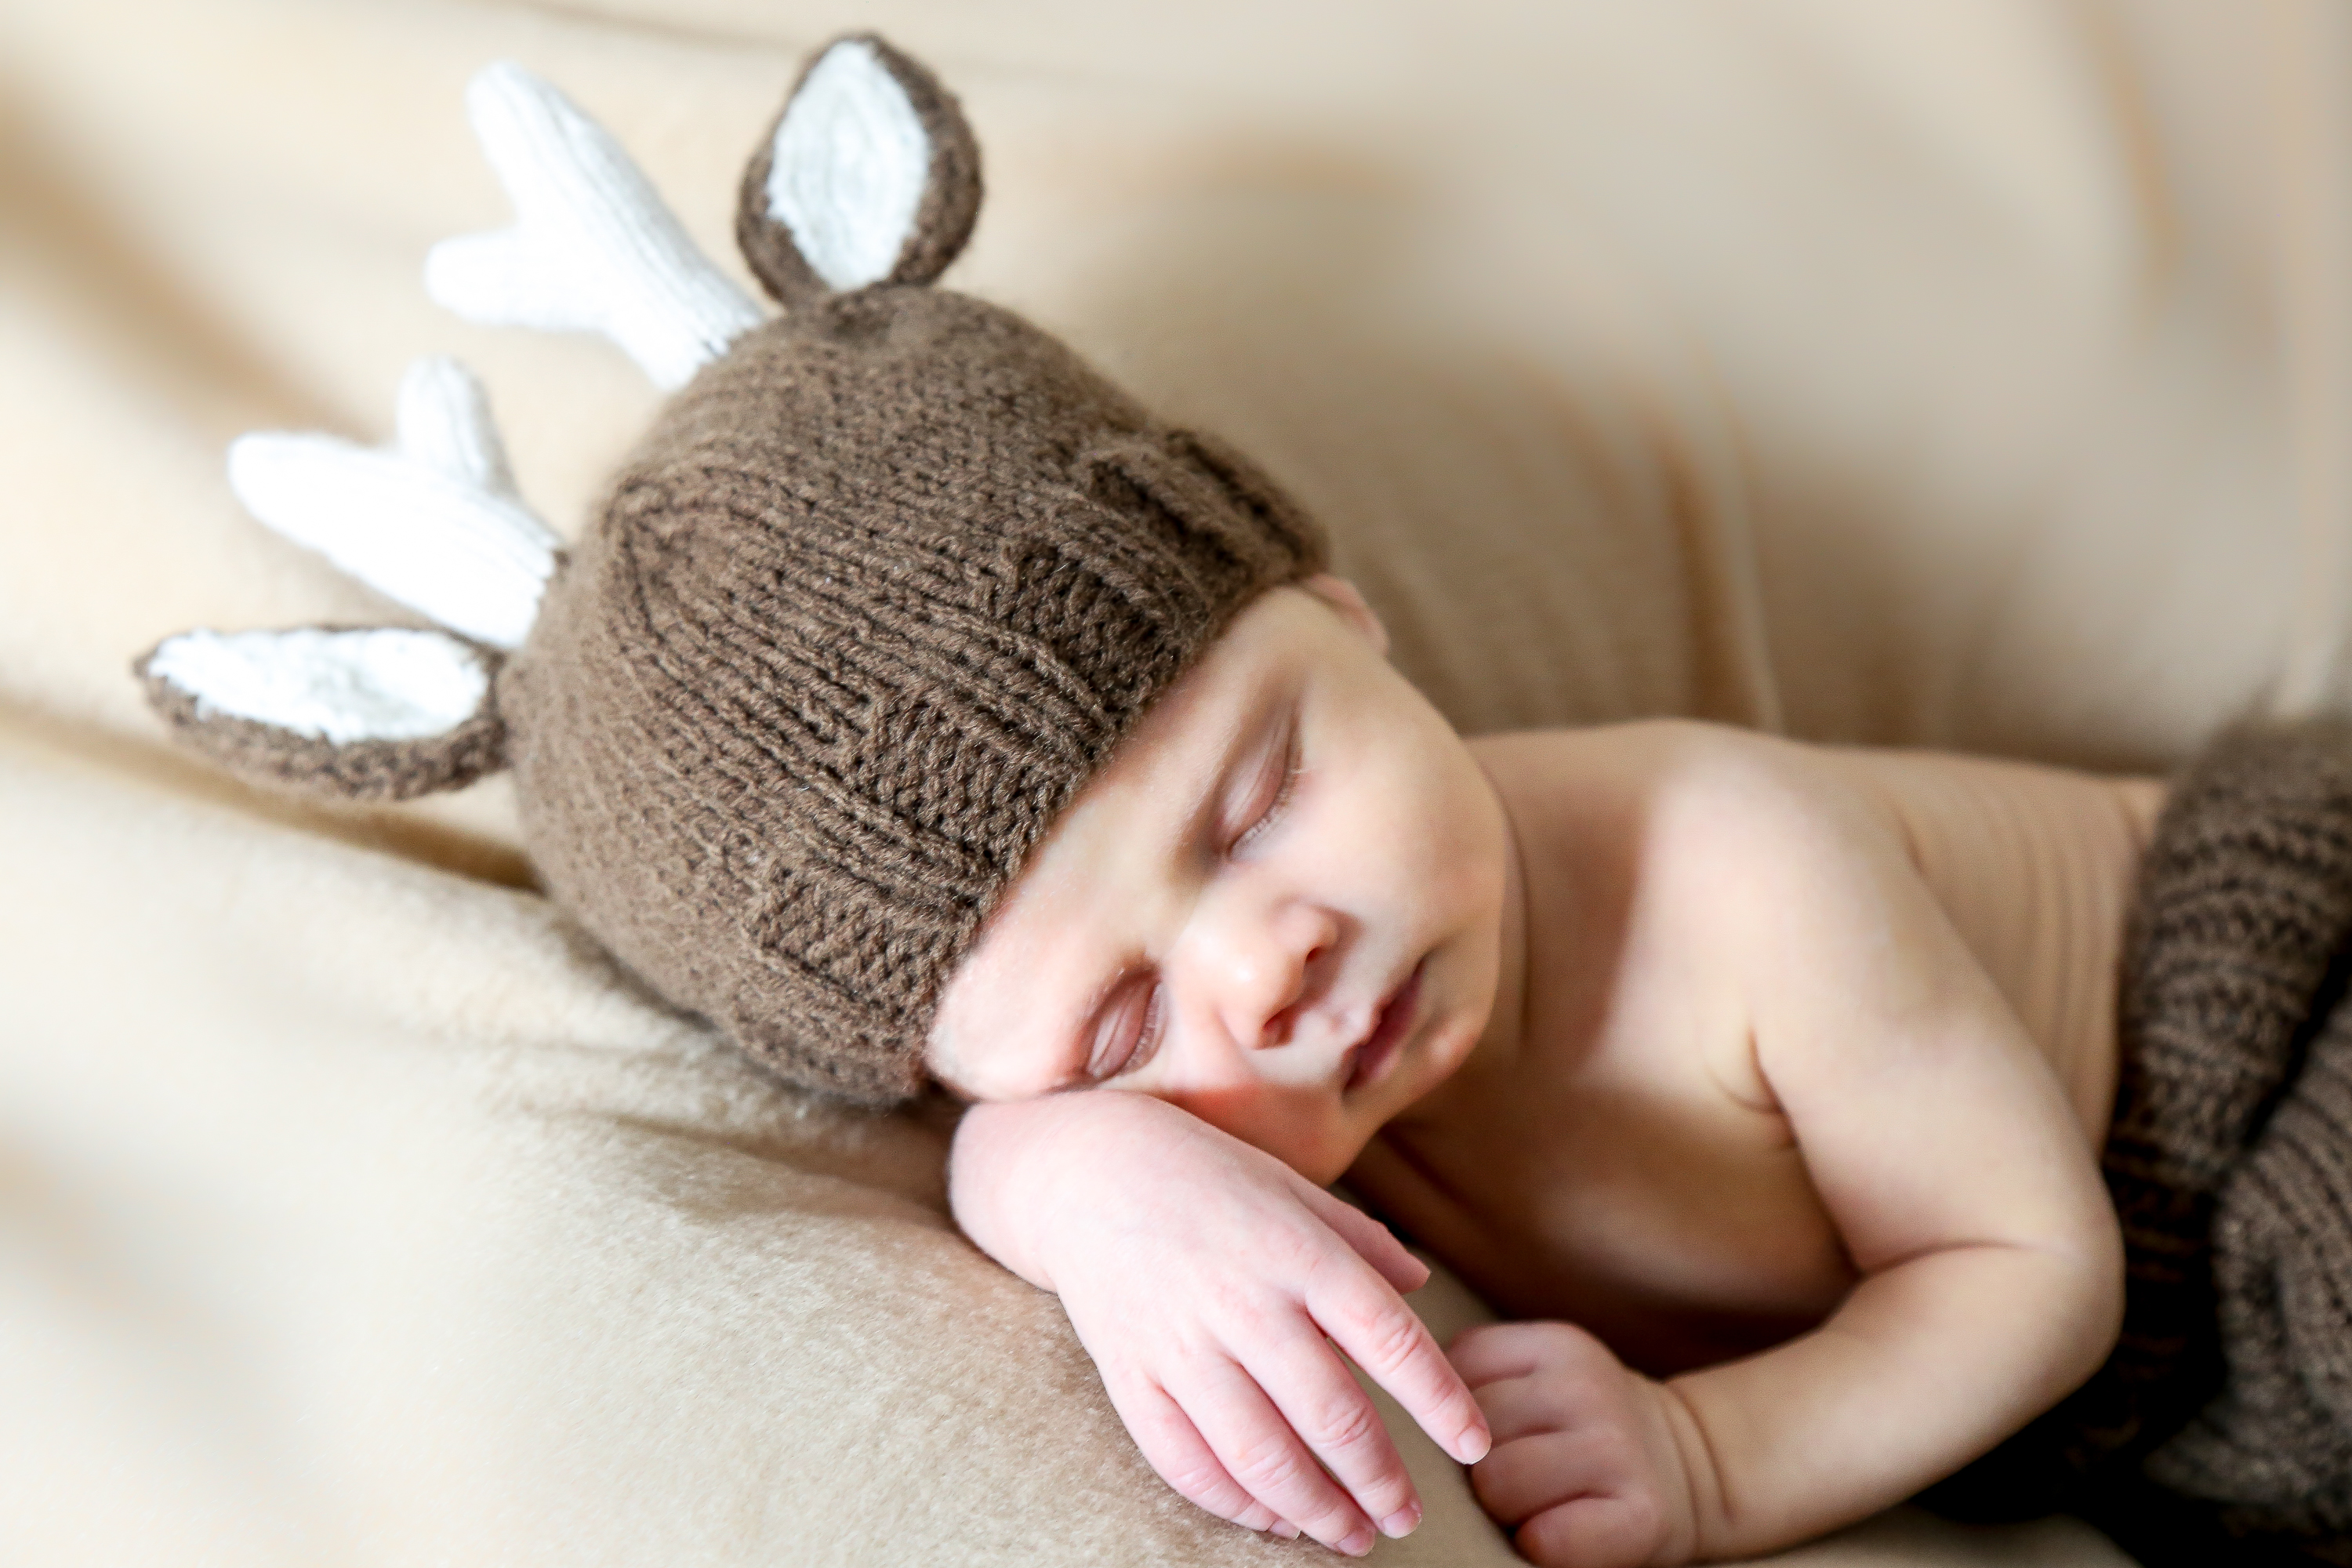 Newborn photographs of baby boy, Finley Harold Maki, one month old.